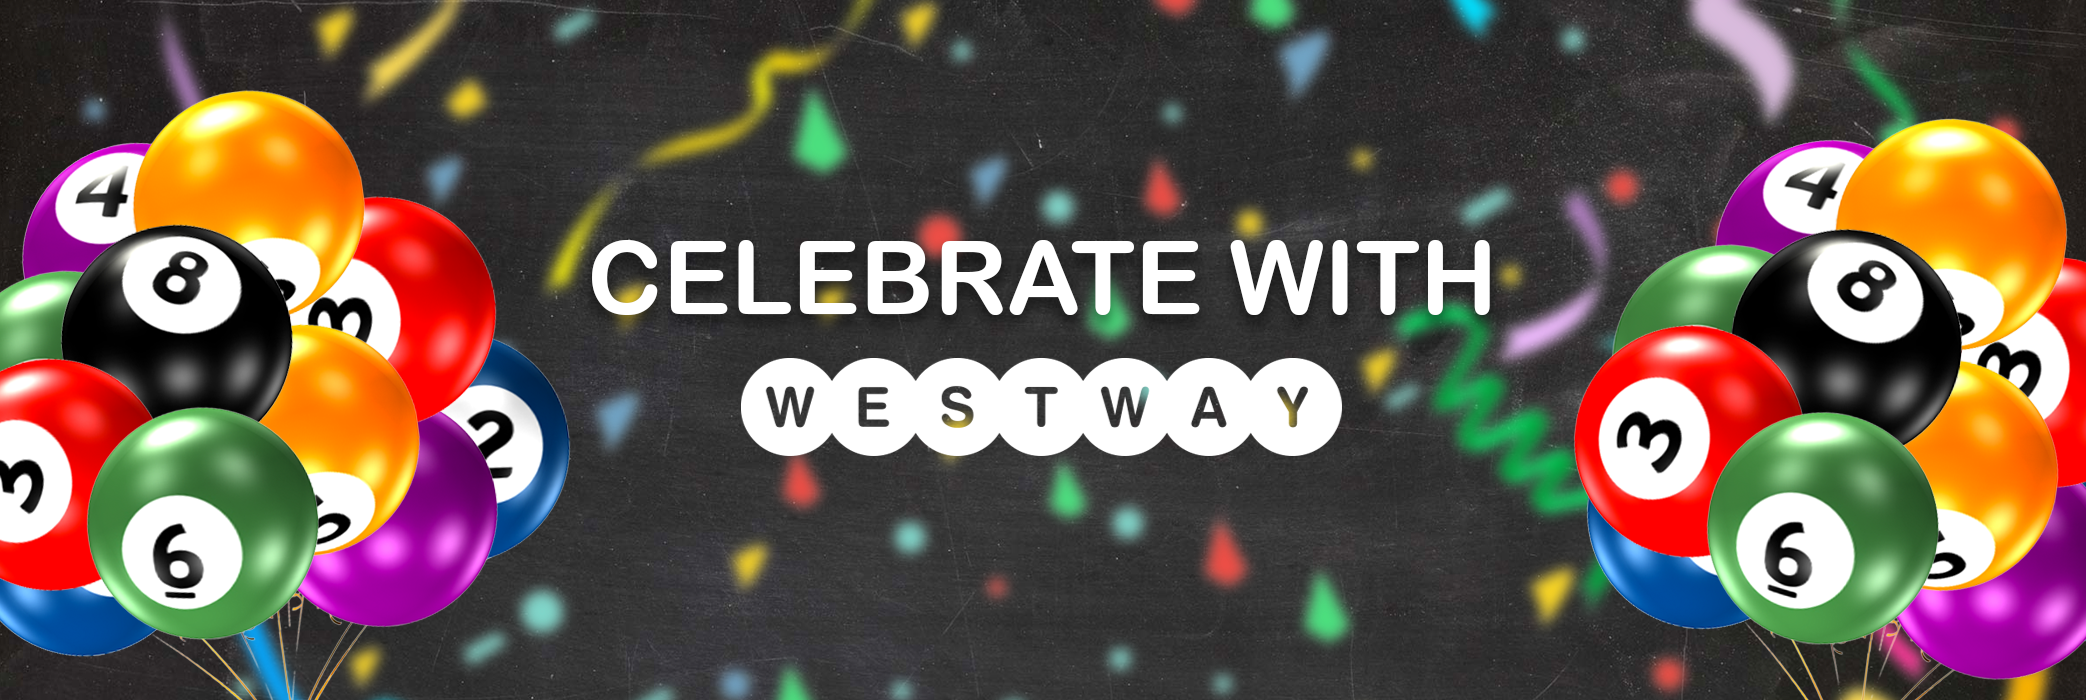 celebrate-with-westway.png